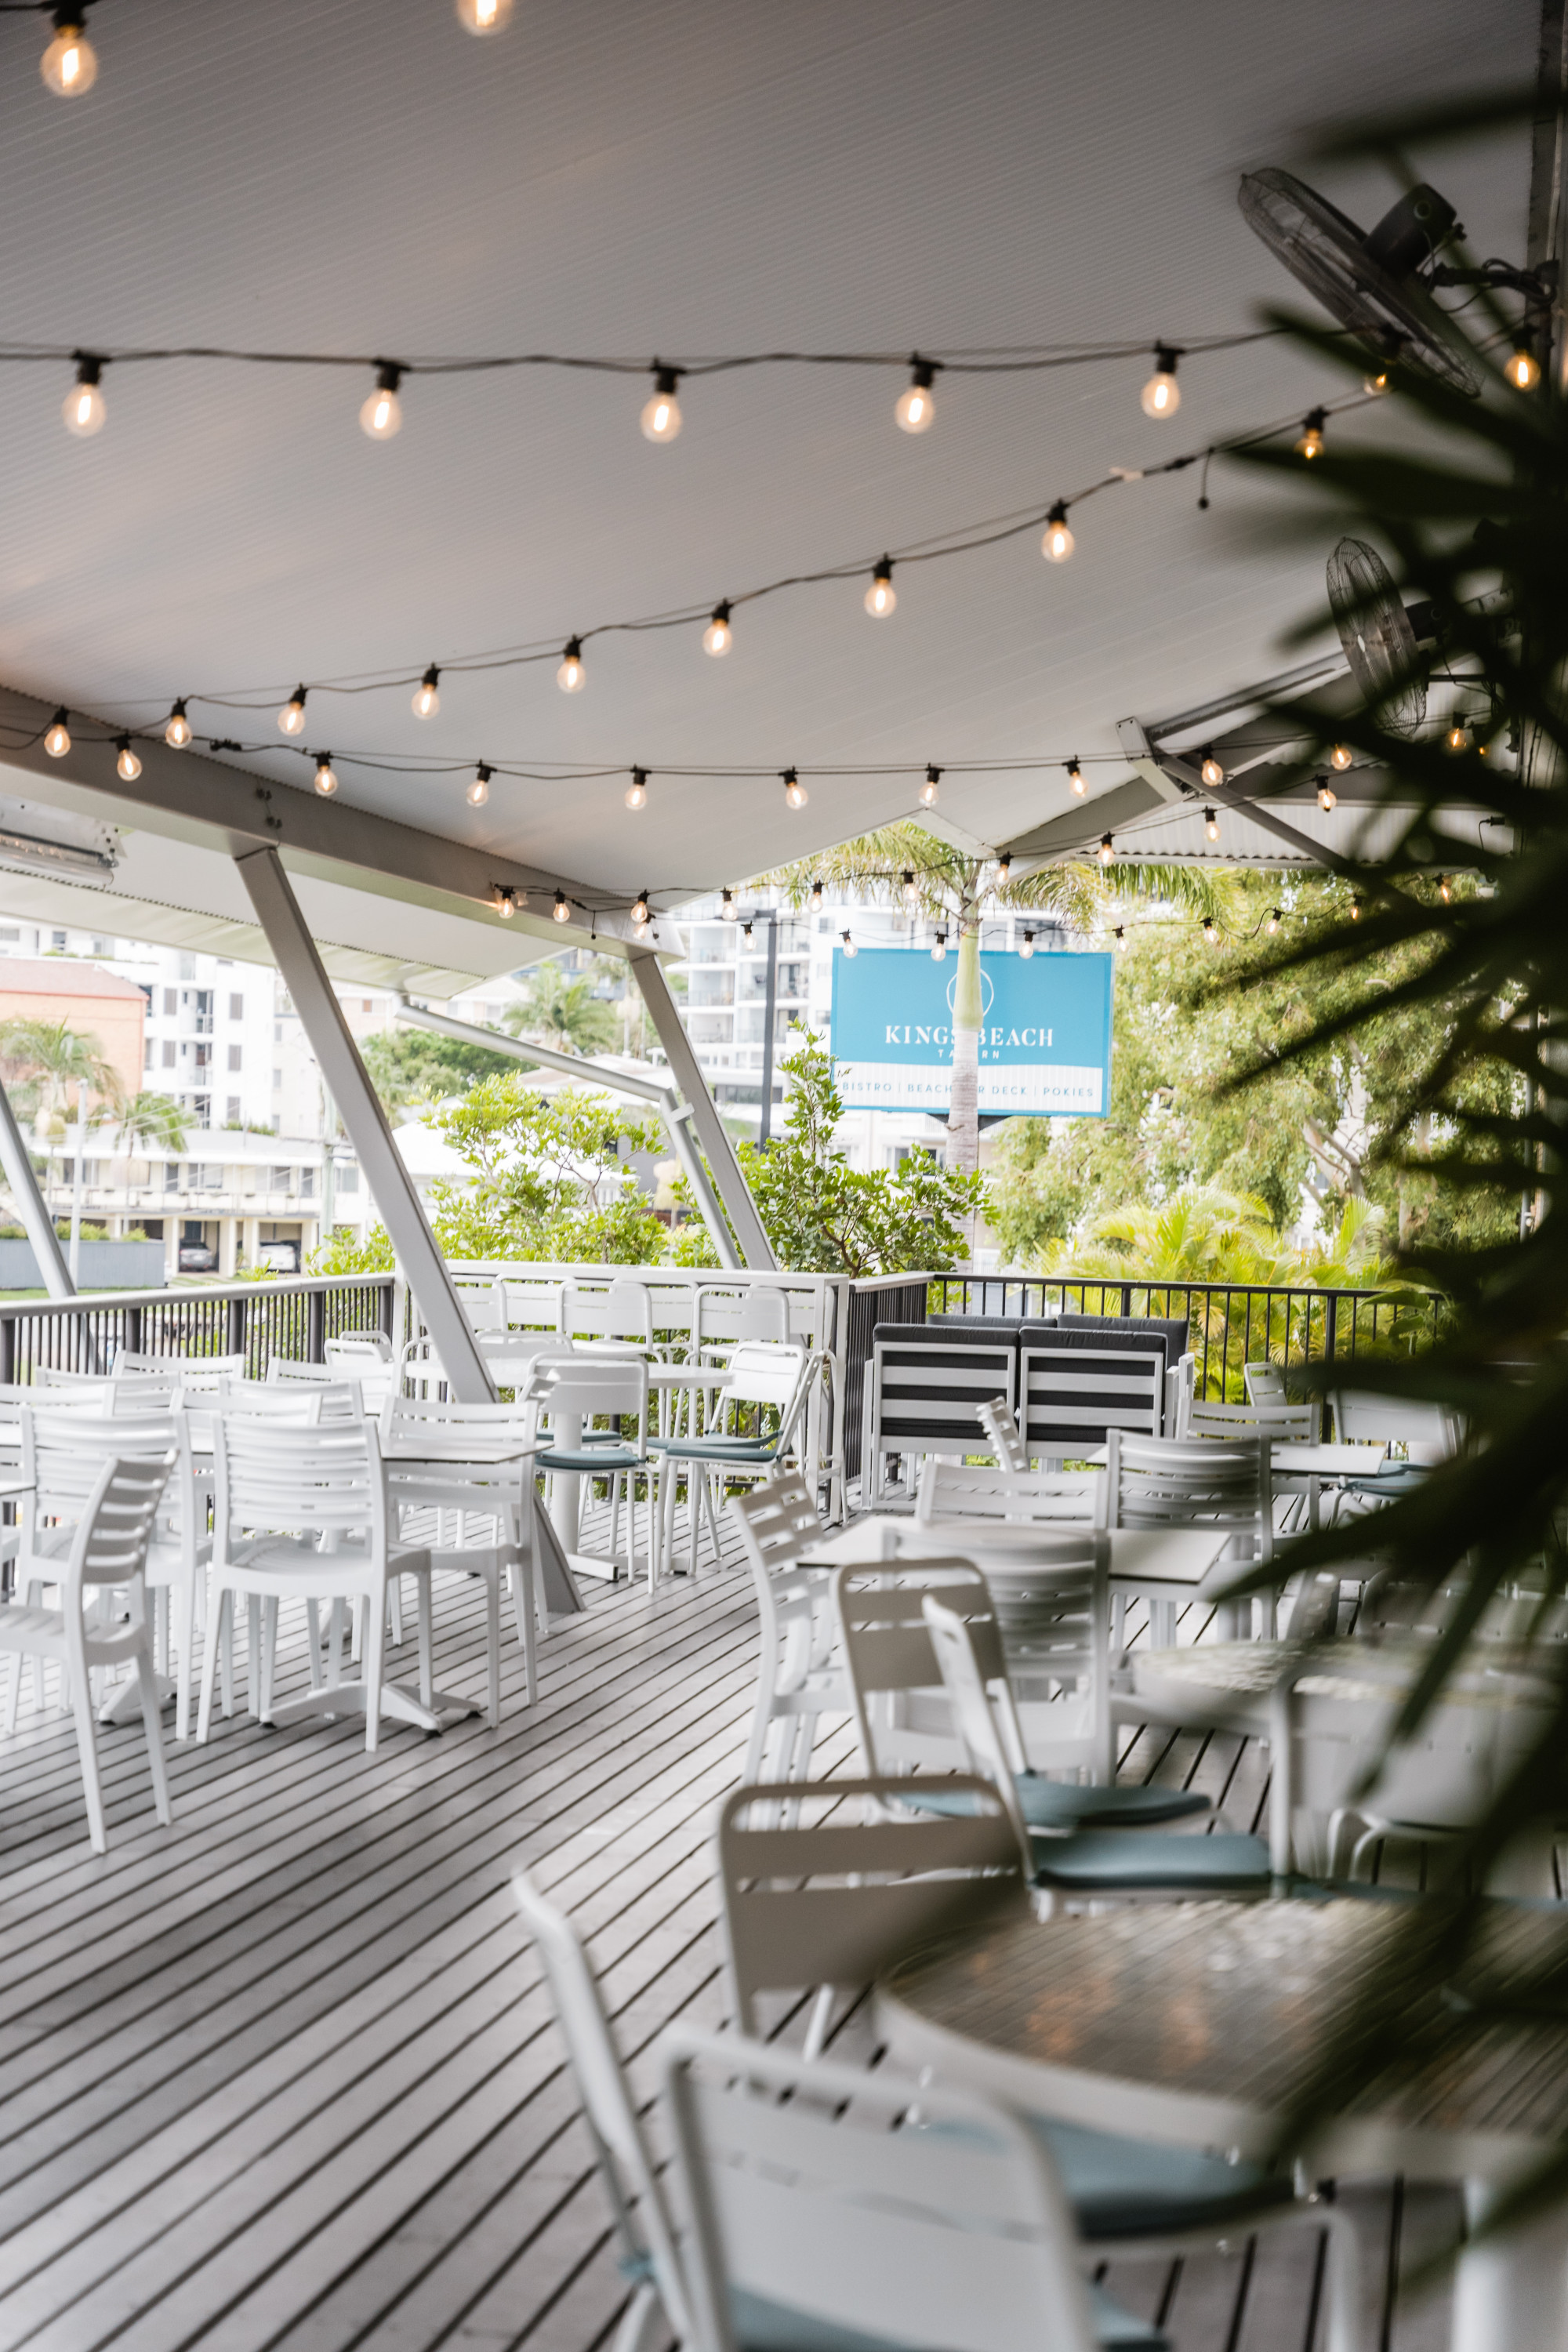 kings beach tavern's white outdoor deck with fairy lights